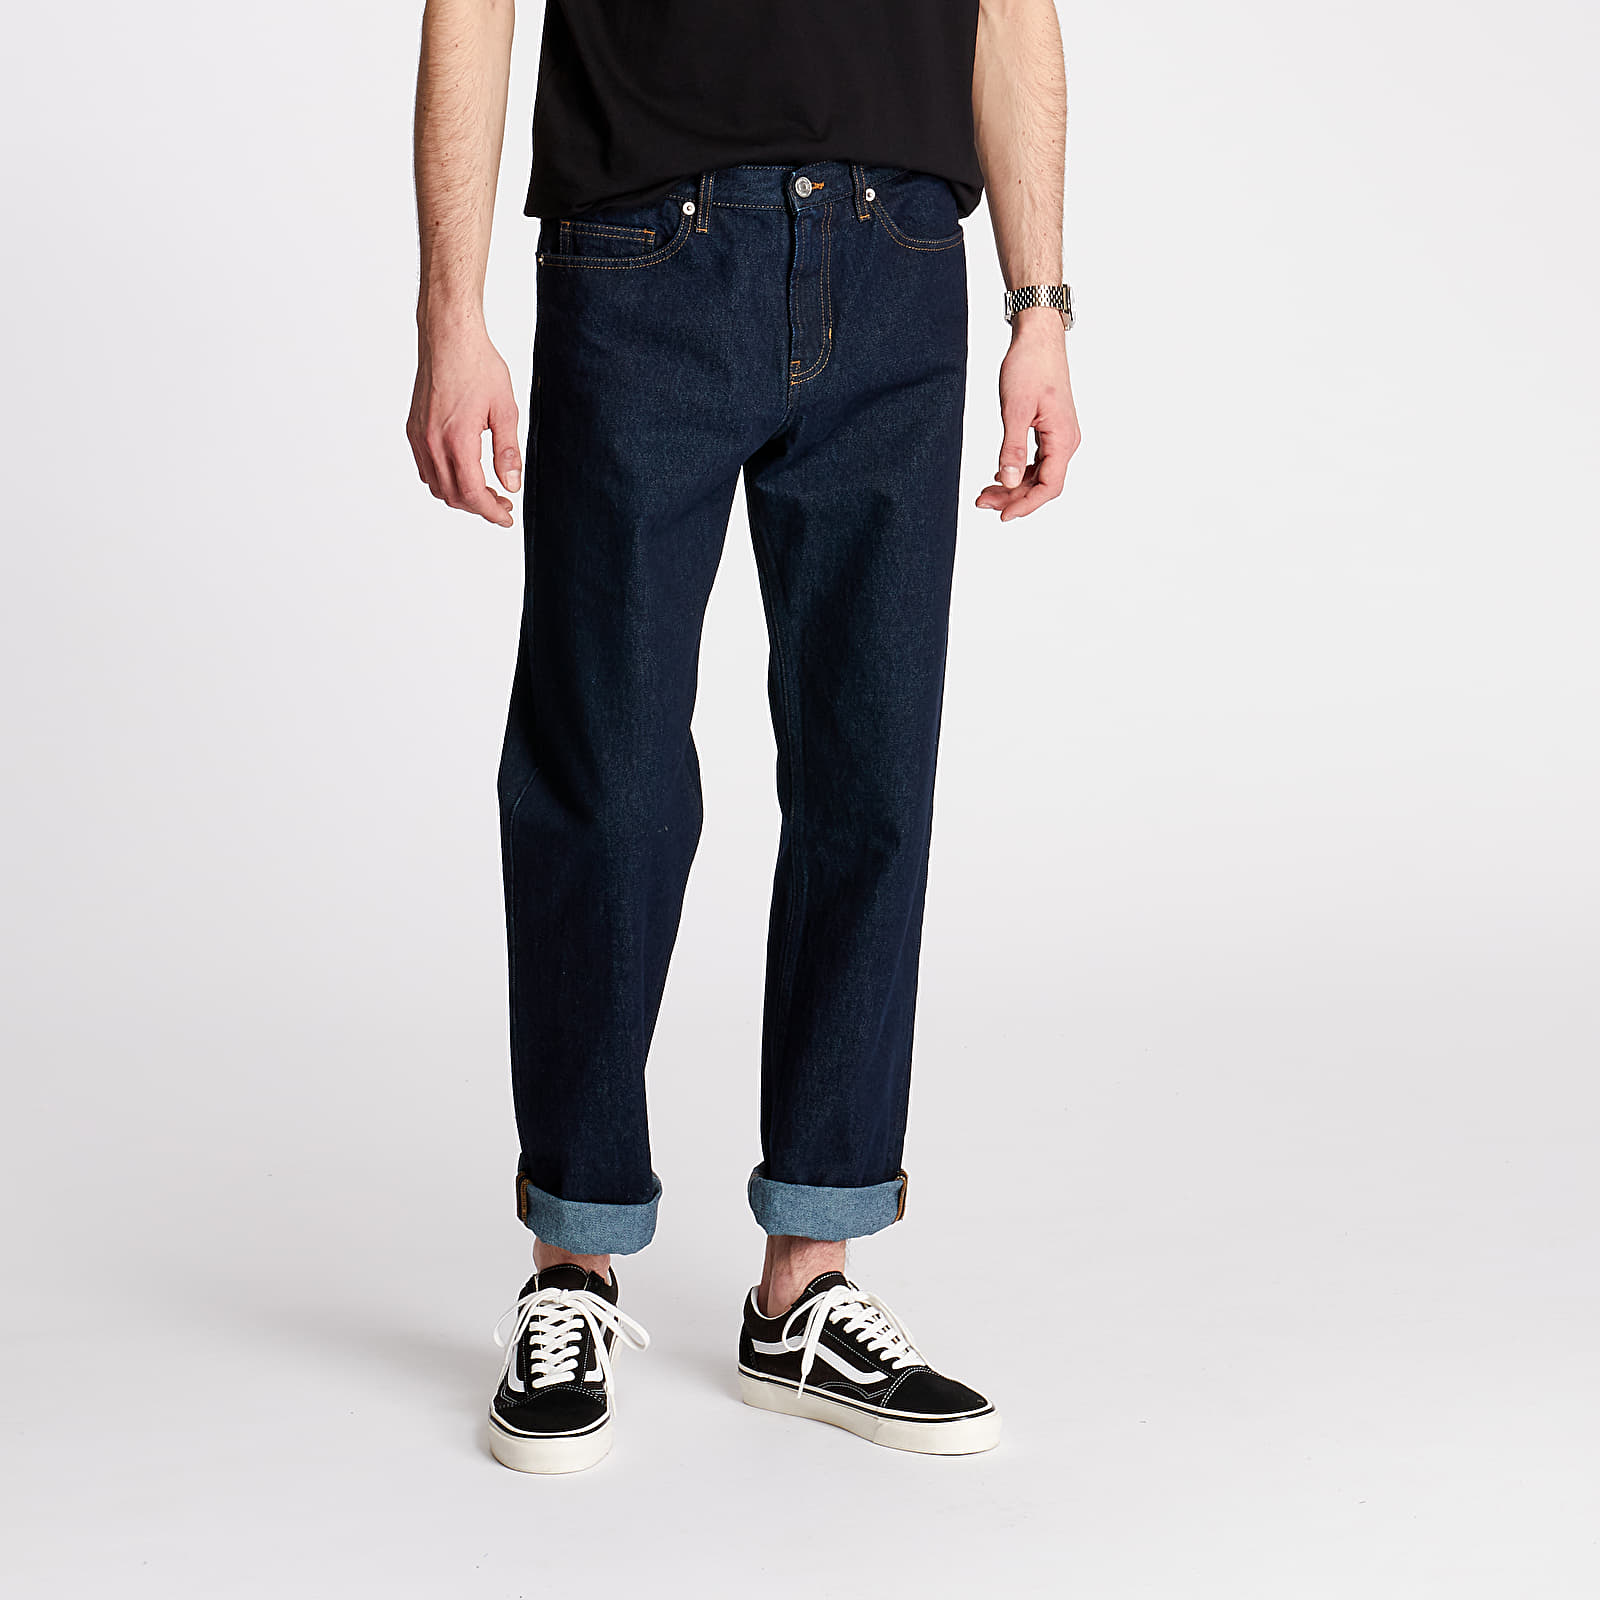 Pants and jeans Norse Projects Regular Denim Indigo